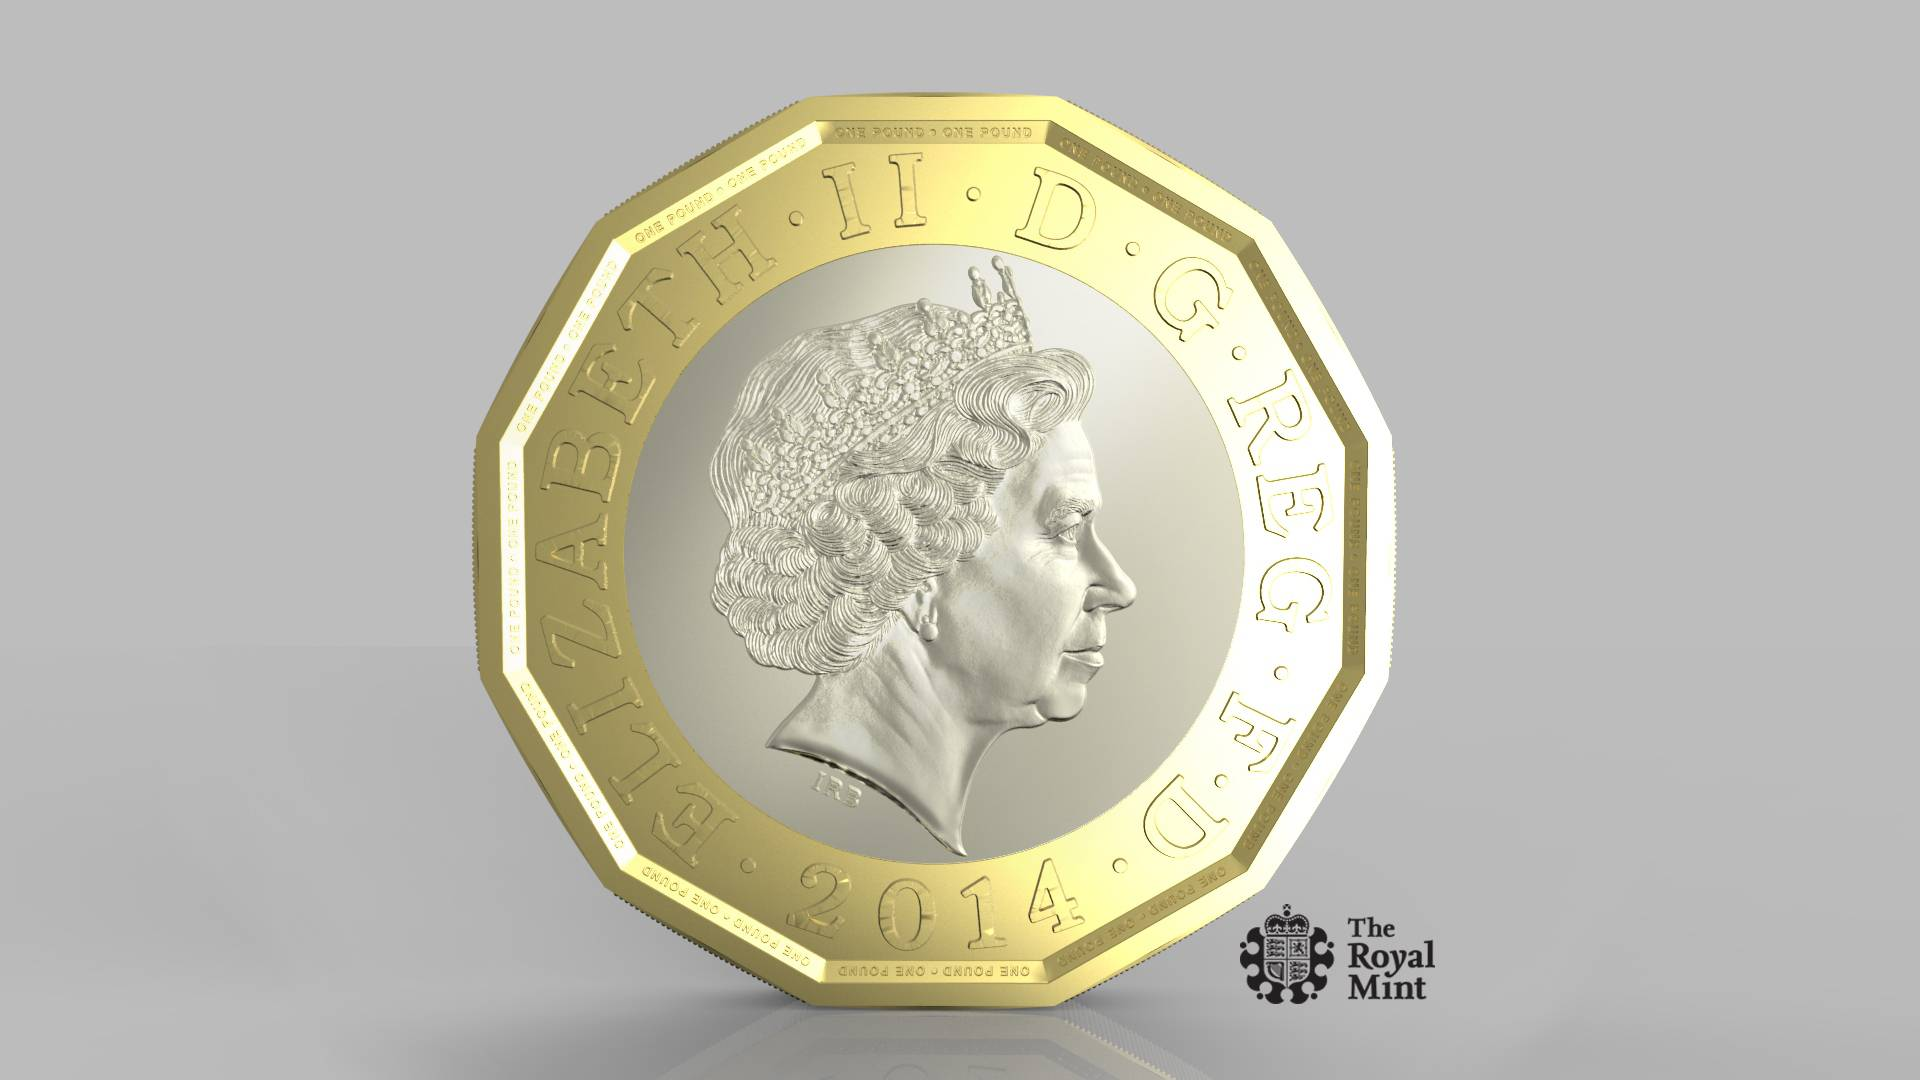 The new one pound coin.